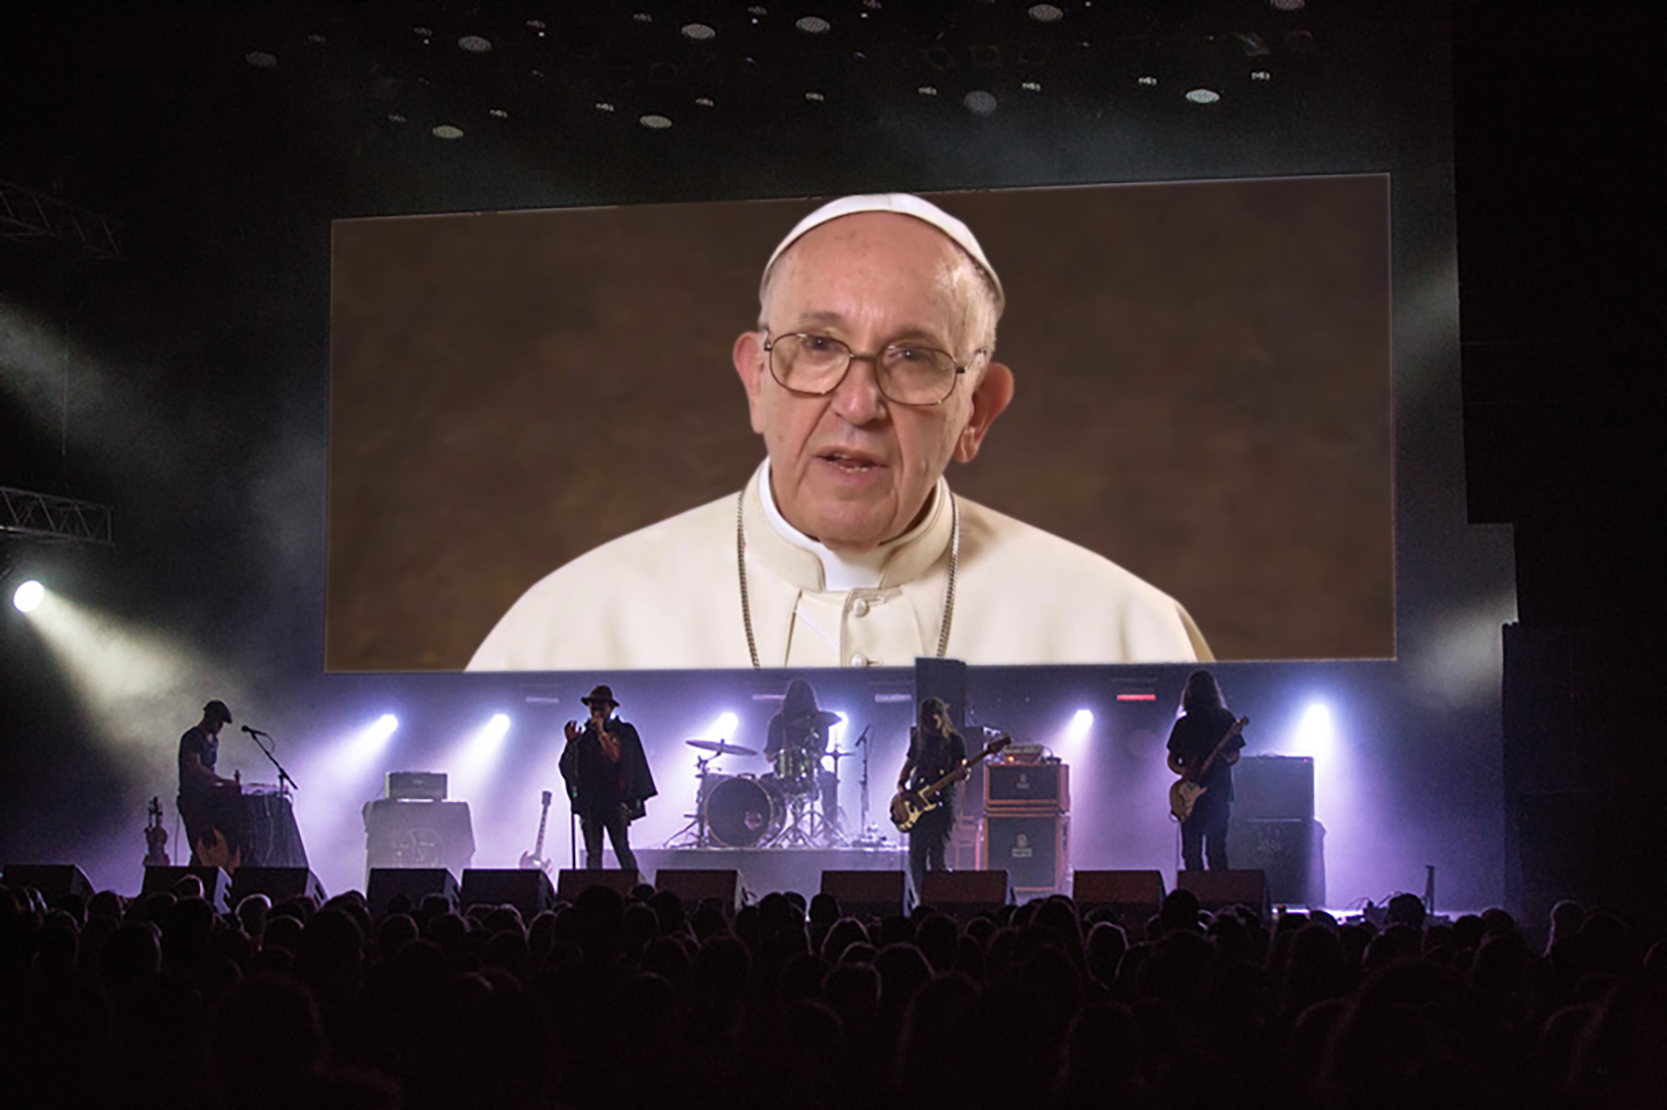 Skype Blessings - If Pope Francis couldn't be there in person, we'd ask him to bless the block party via live stream, making it the first-ever papally blessed music festival.